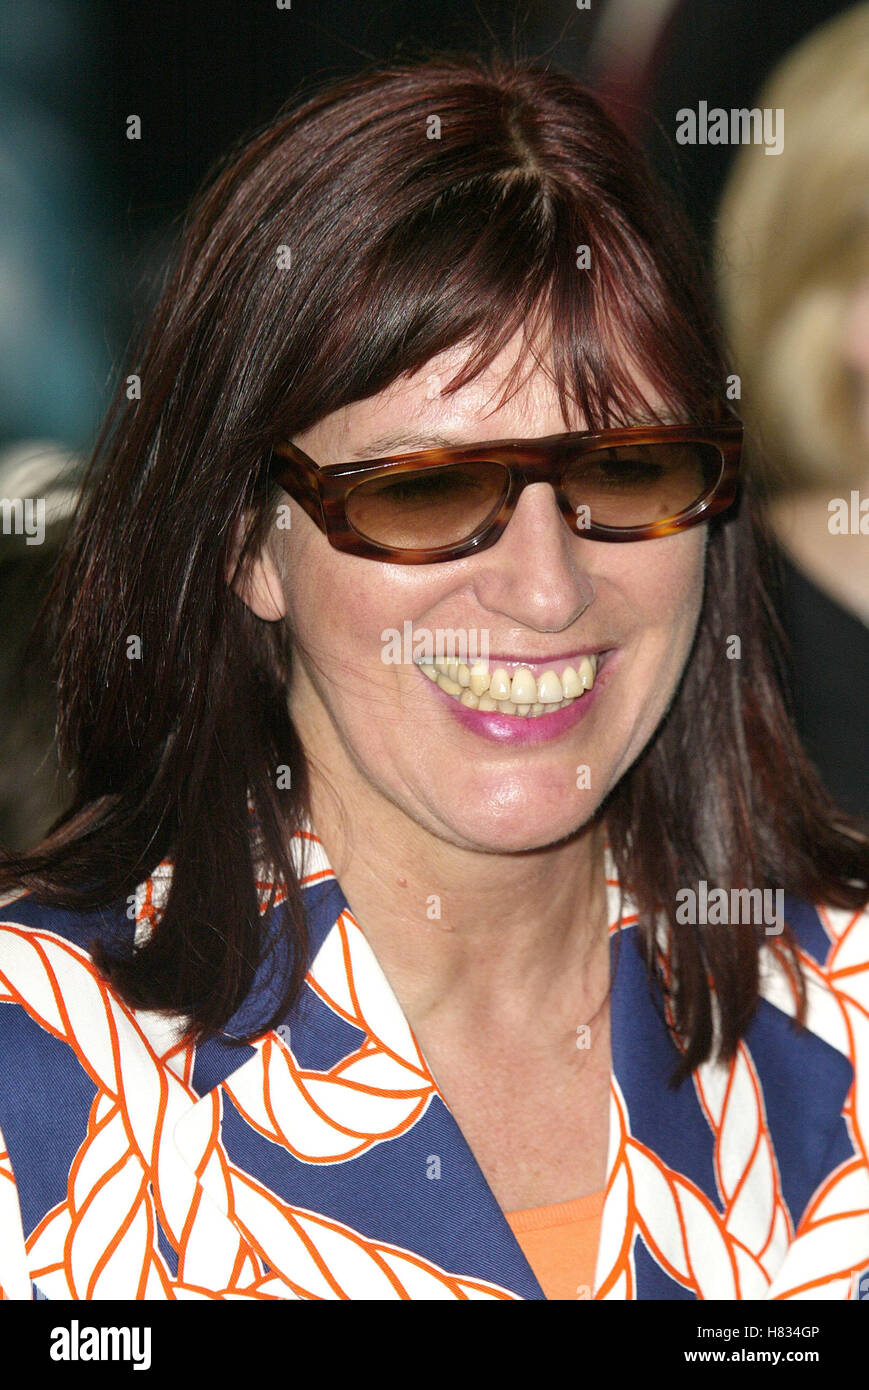 JANET STREET PORTER 'MINORITY REPORT' LONDON PREM THE ODEON LEICESTER SQUARE LONDON ENGL 26 June 2002 - Stock Image